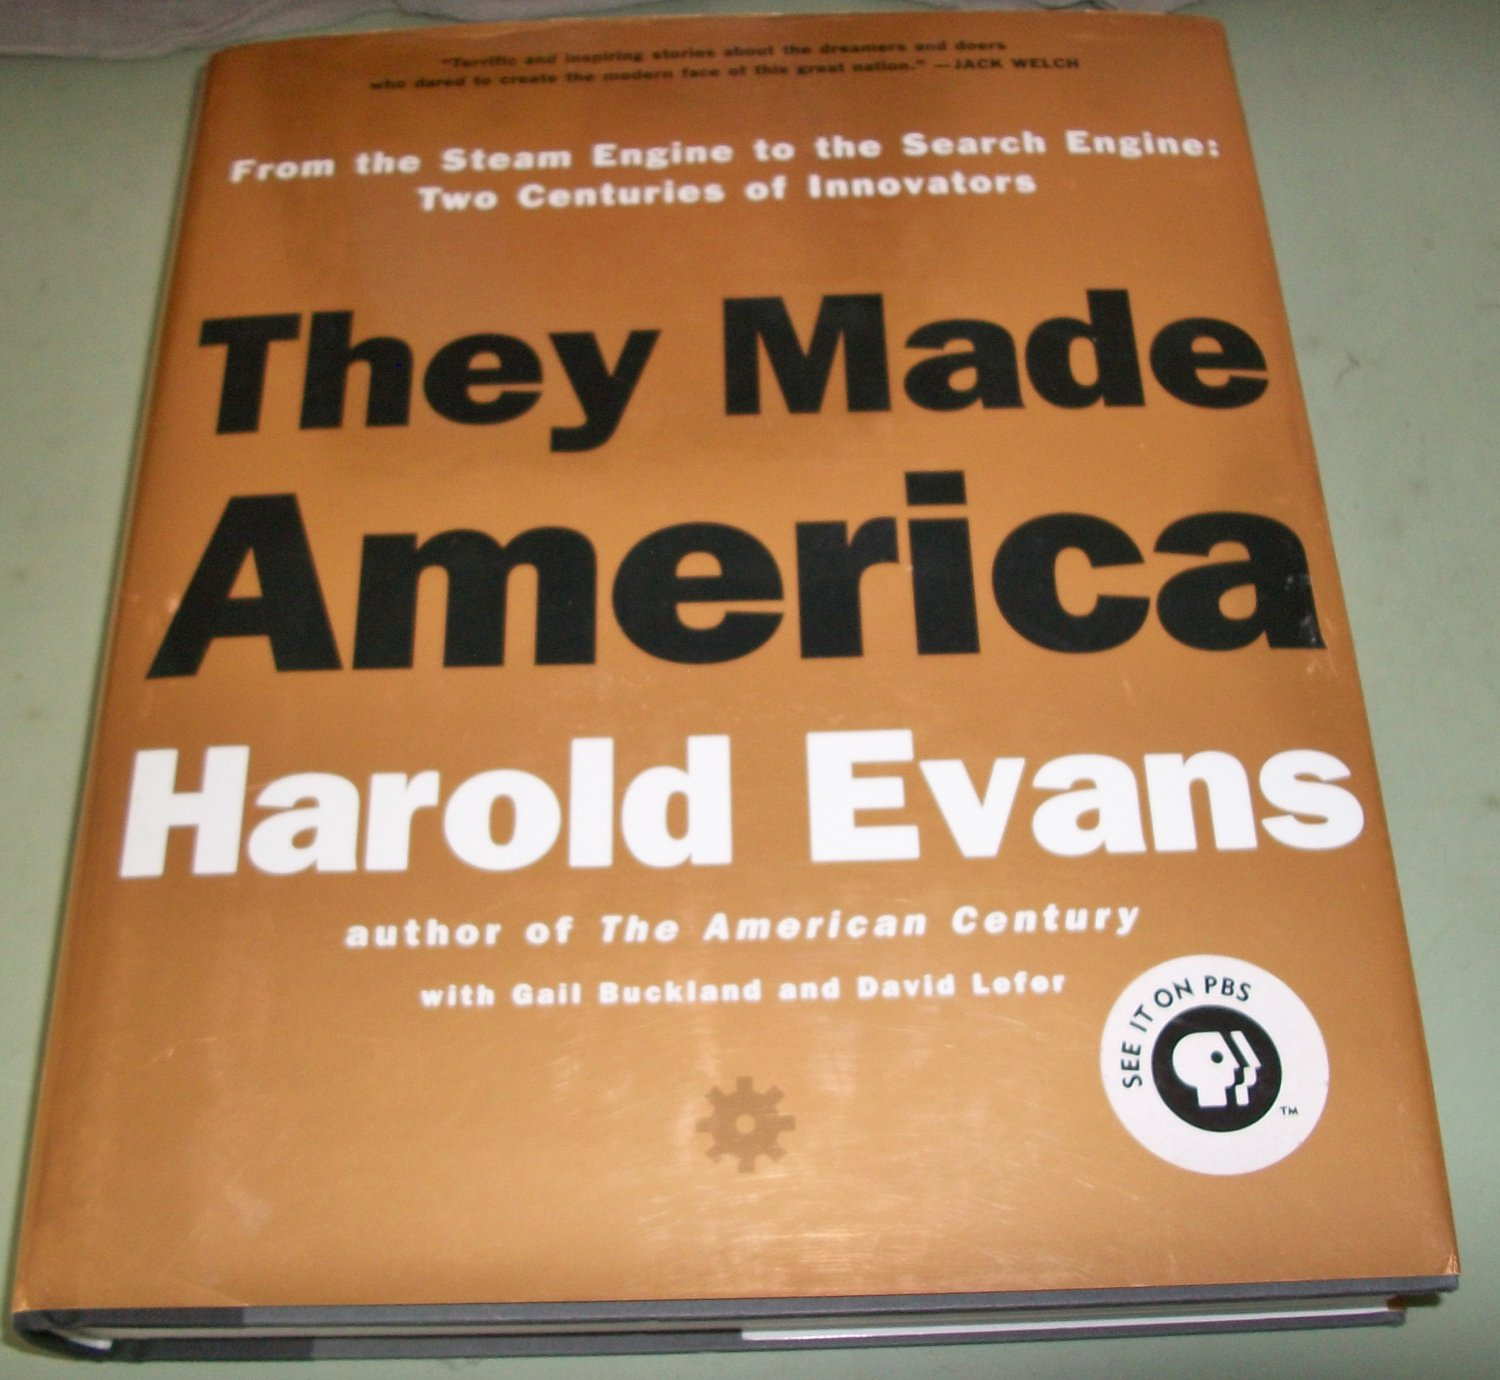 They Made America by Harold Evans - Two Centuries Of Innovators